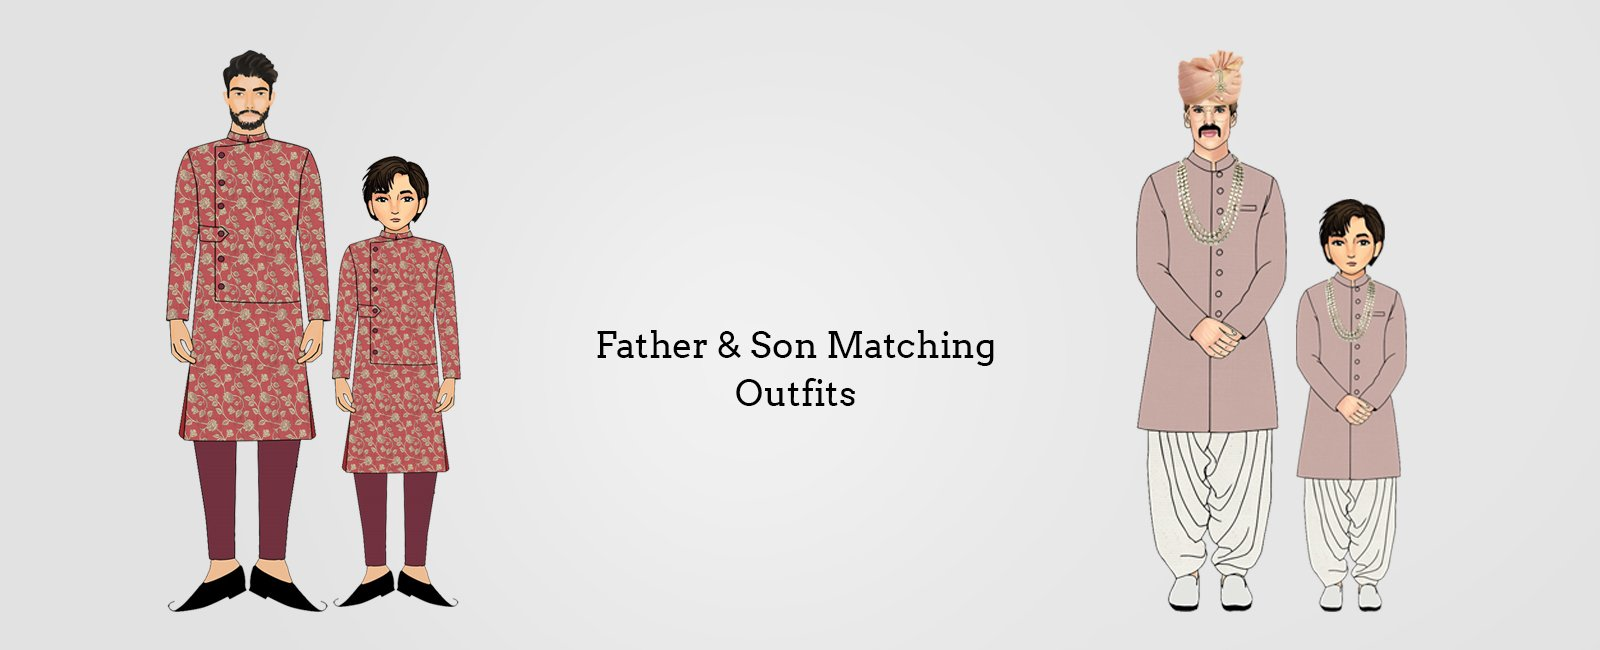 Father & Son Matching Outfits